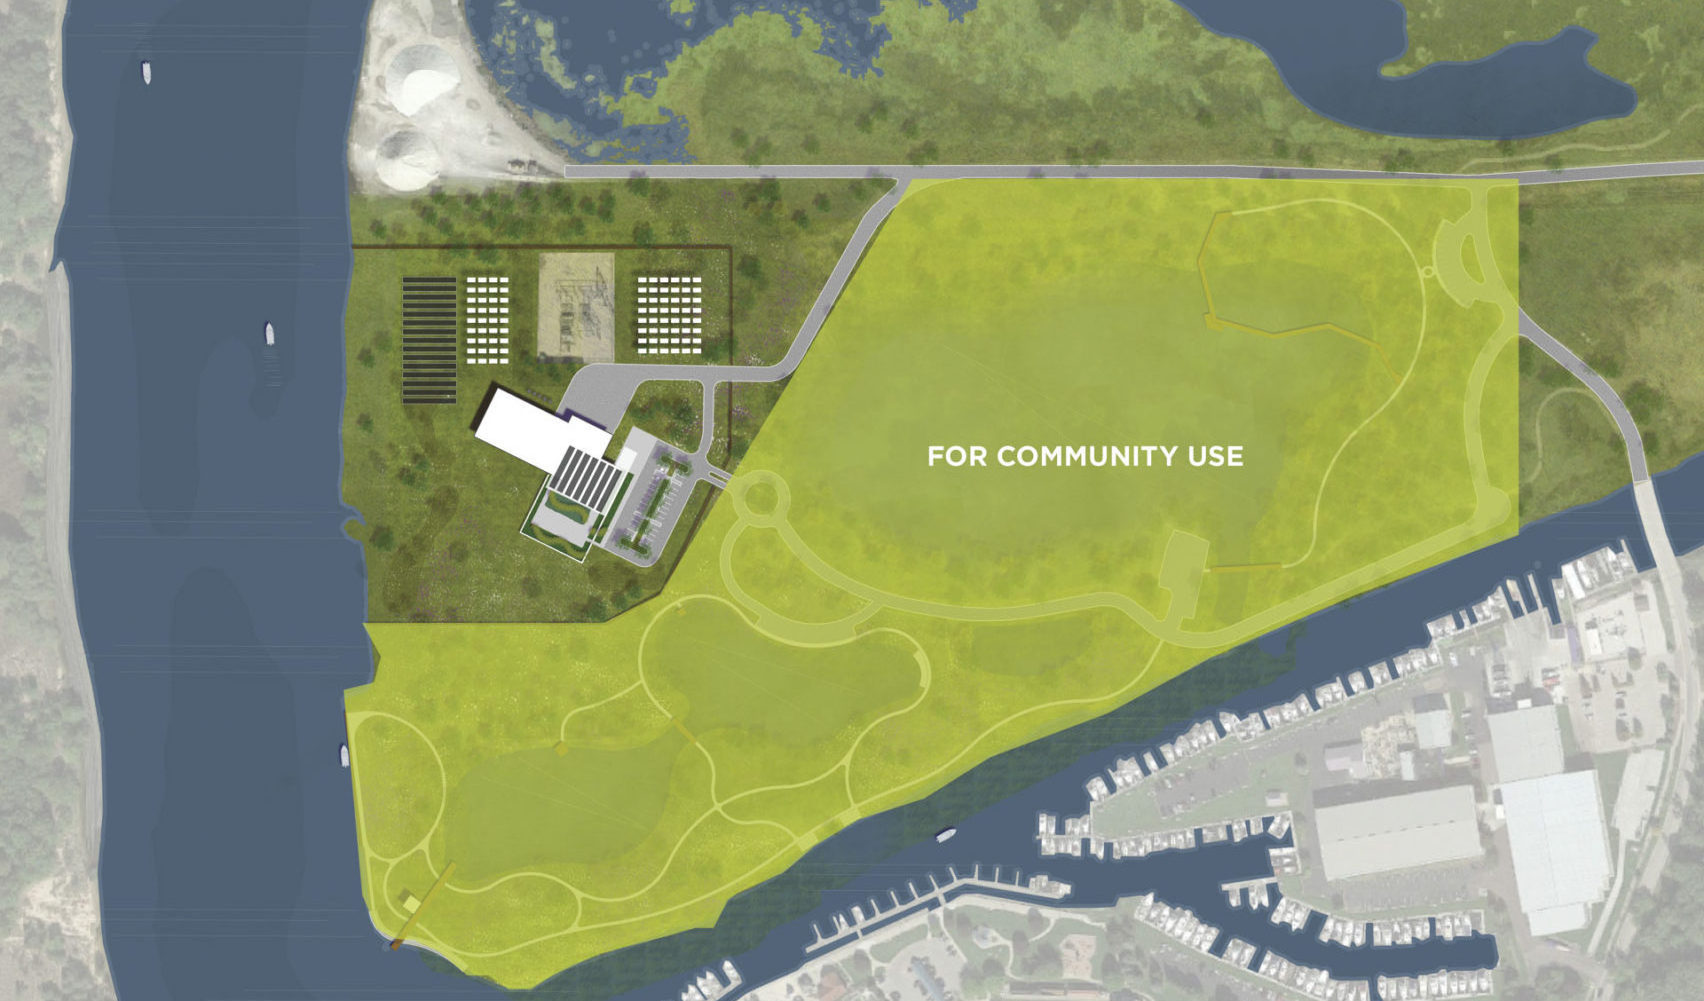 4 - GHBLP Site Rendering - Aerial Plan with Community Portion Highlighted